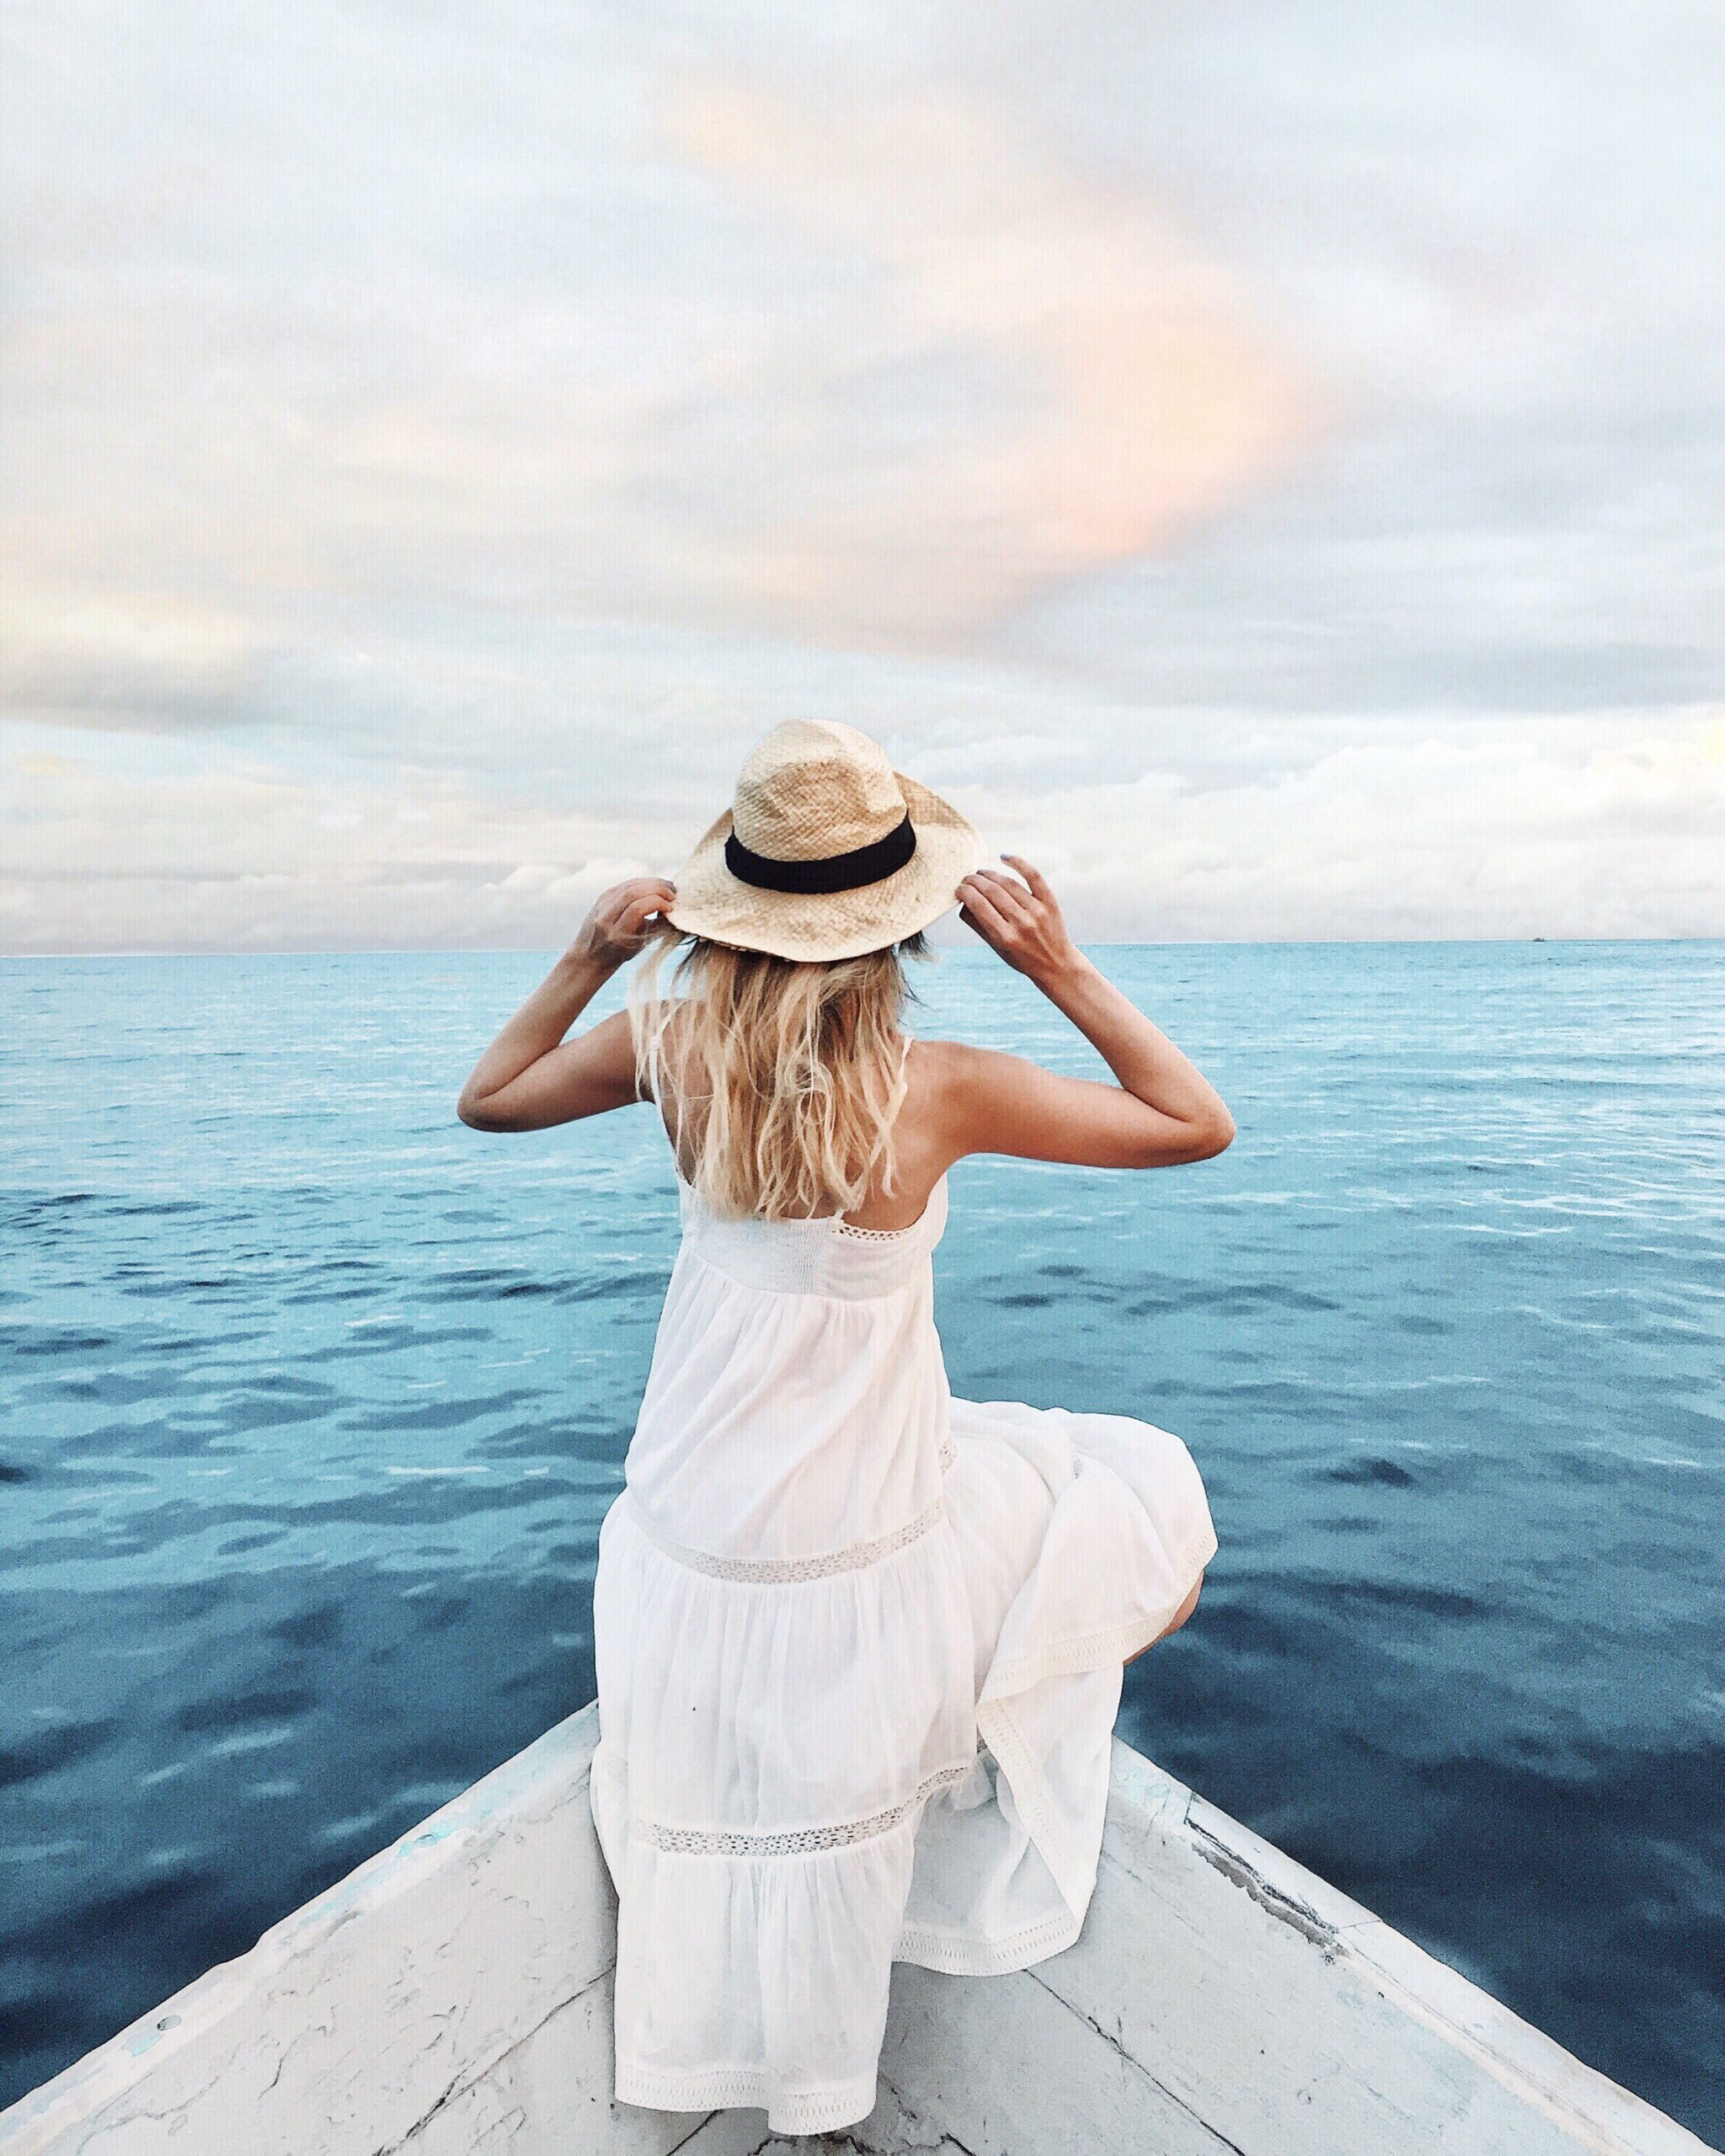 Woman wearing a hat on a boat